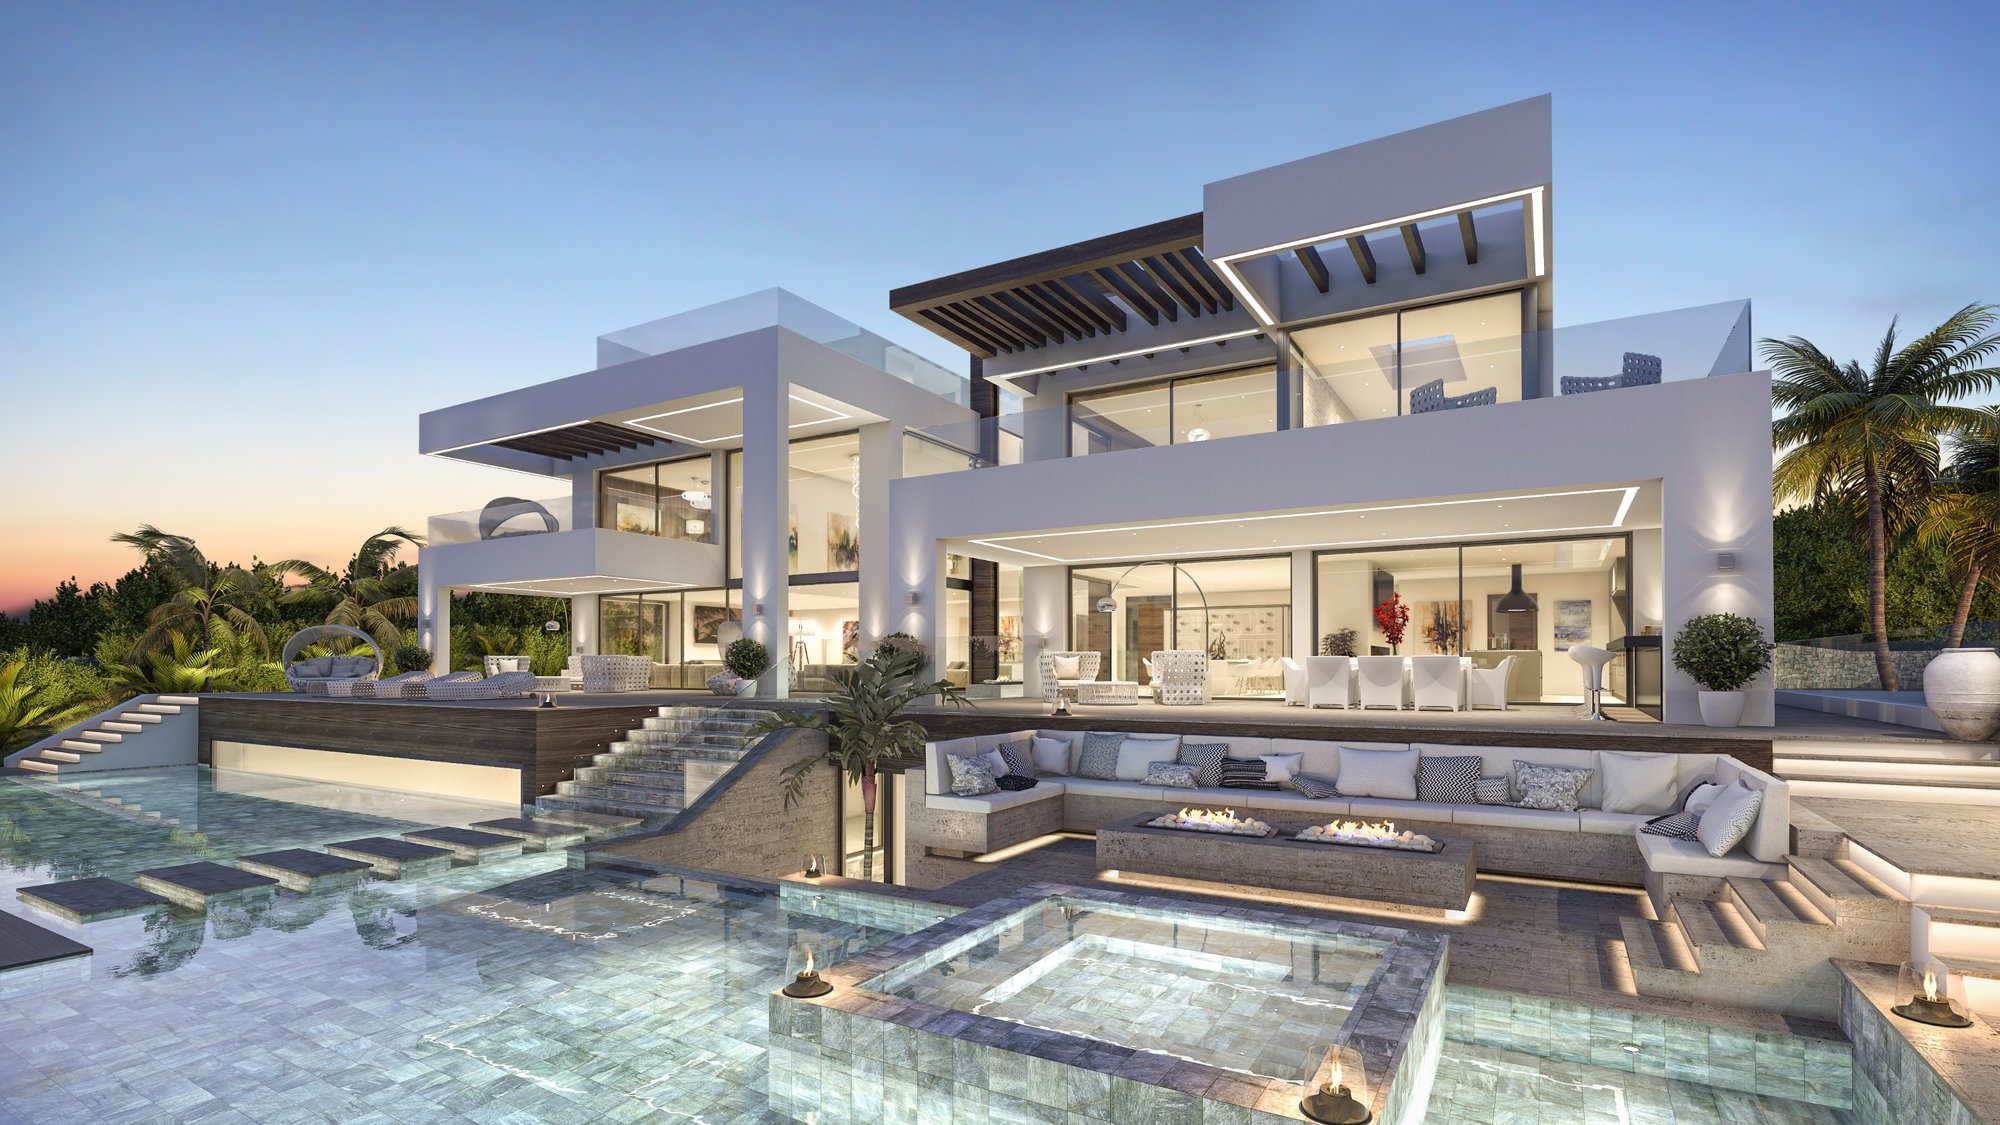 Luxury Villas Miami Beach For Sale